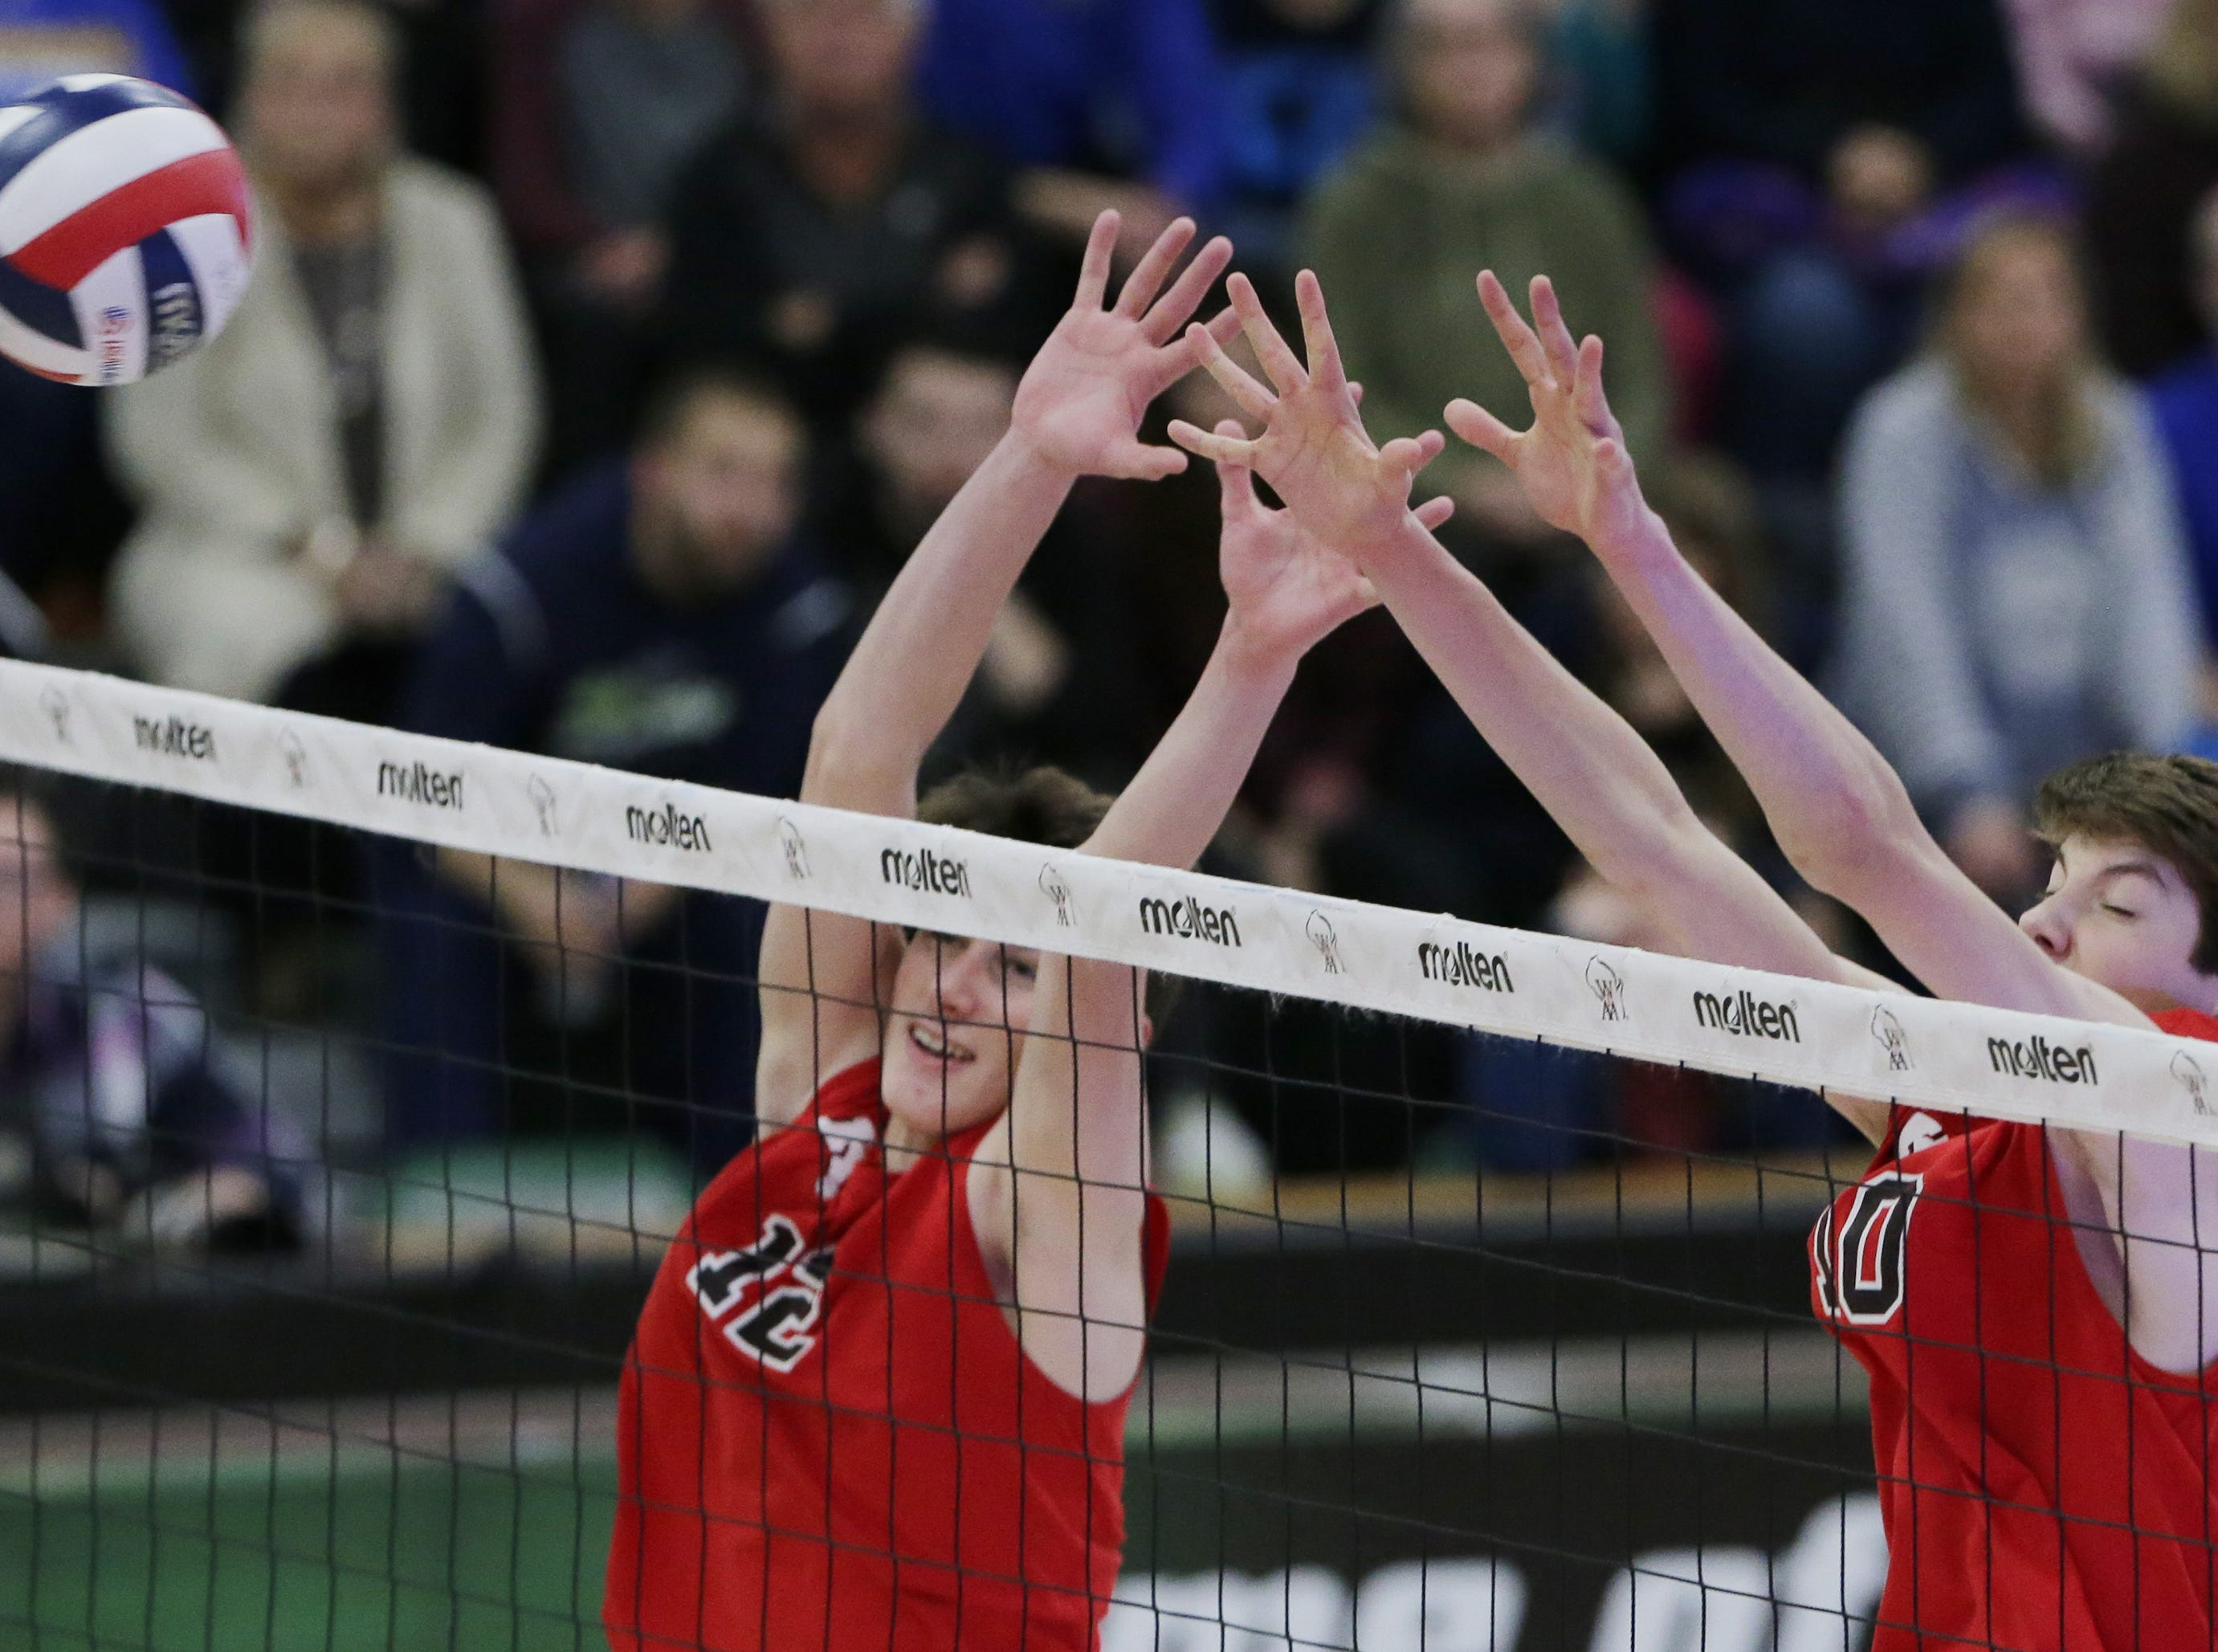 Kimberly's Parker Hietpas and Landon Krause get ready to block a shot.  Kimberly Papermakers played Germantown Warhawks in Division 1 WIAA State Boys Volleyball Championship, Saturday, November 10, 2018 at Wisconsin Lutheran College in Milwaukee, Wis. Joe Sienkiewicz/USA Today NETWORK-Wisconsin